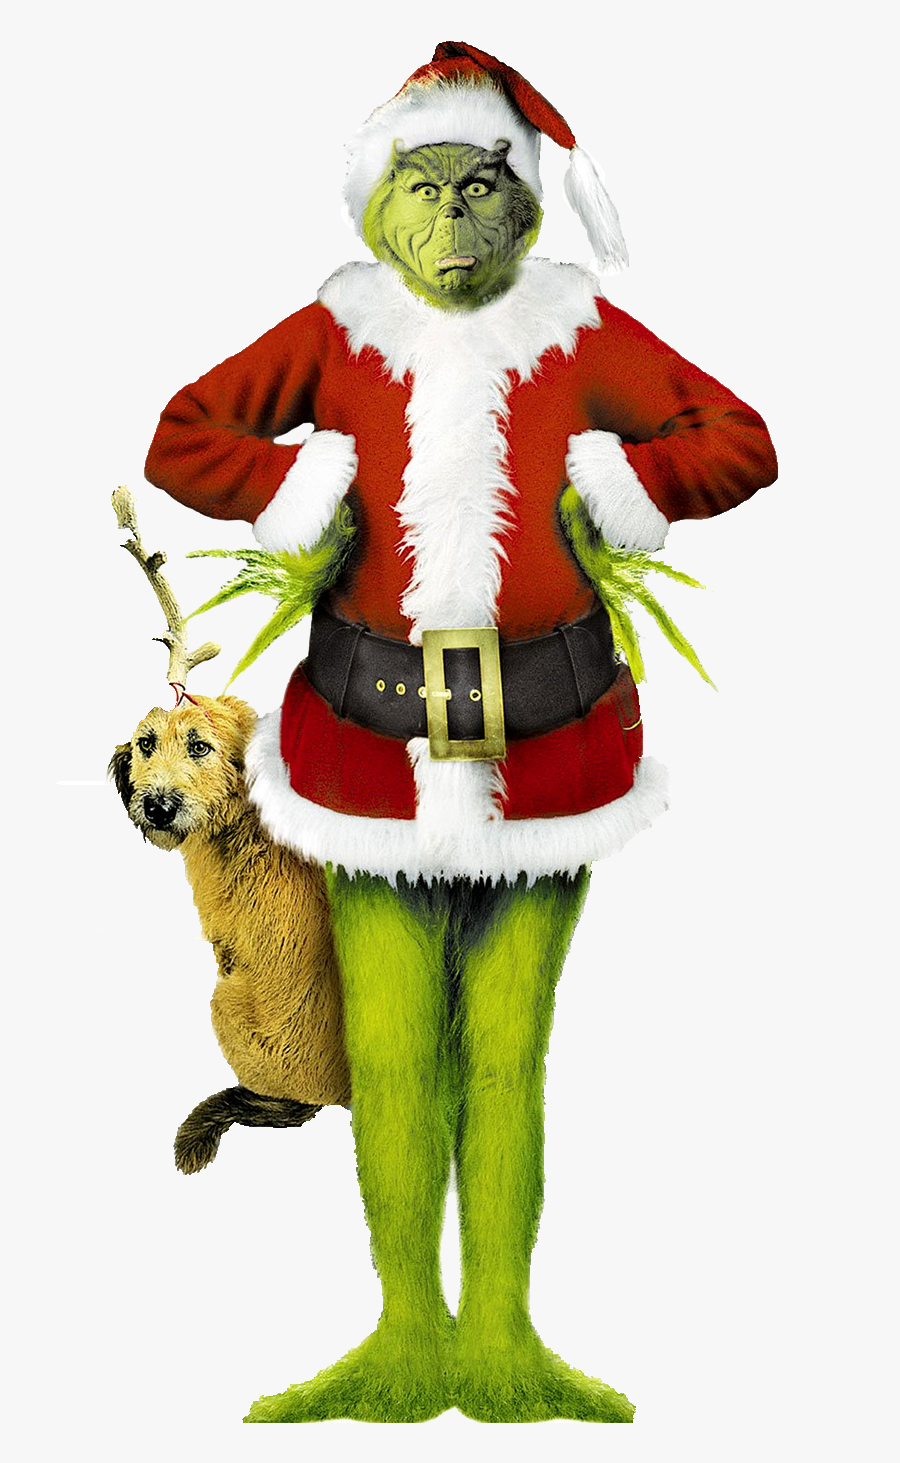 Images Download - Grinch Who Stole Christmas Feet, Transparent Clipart